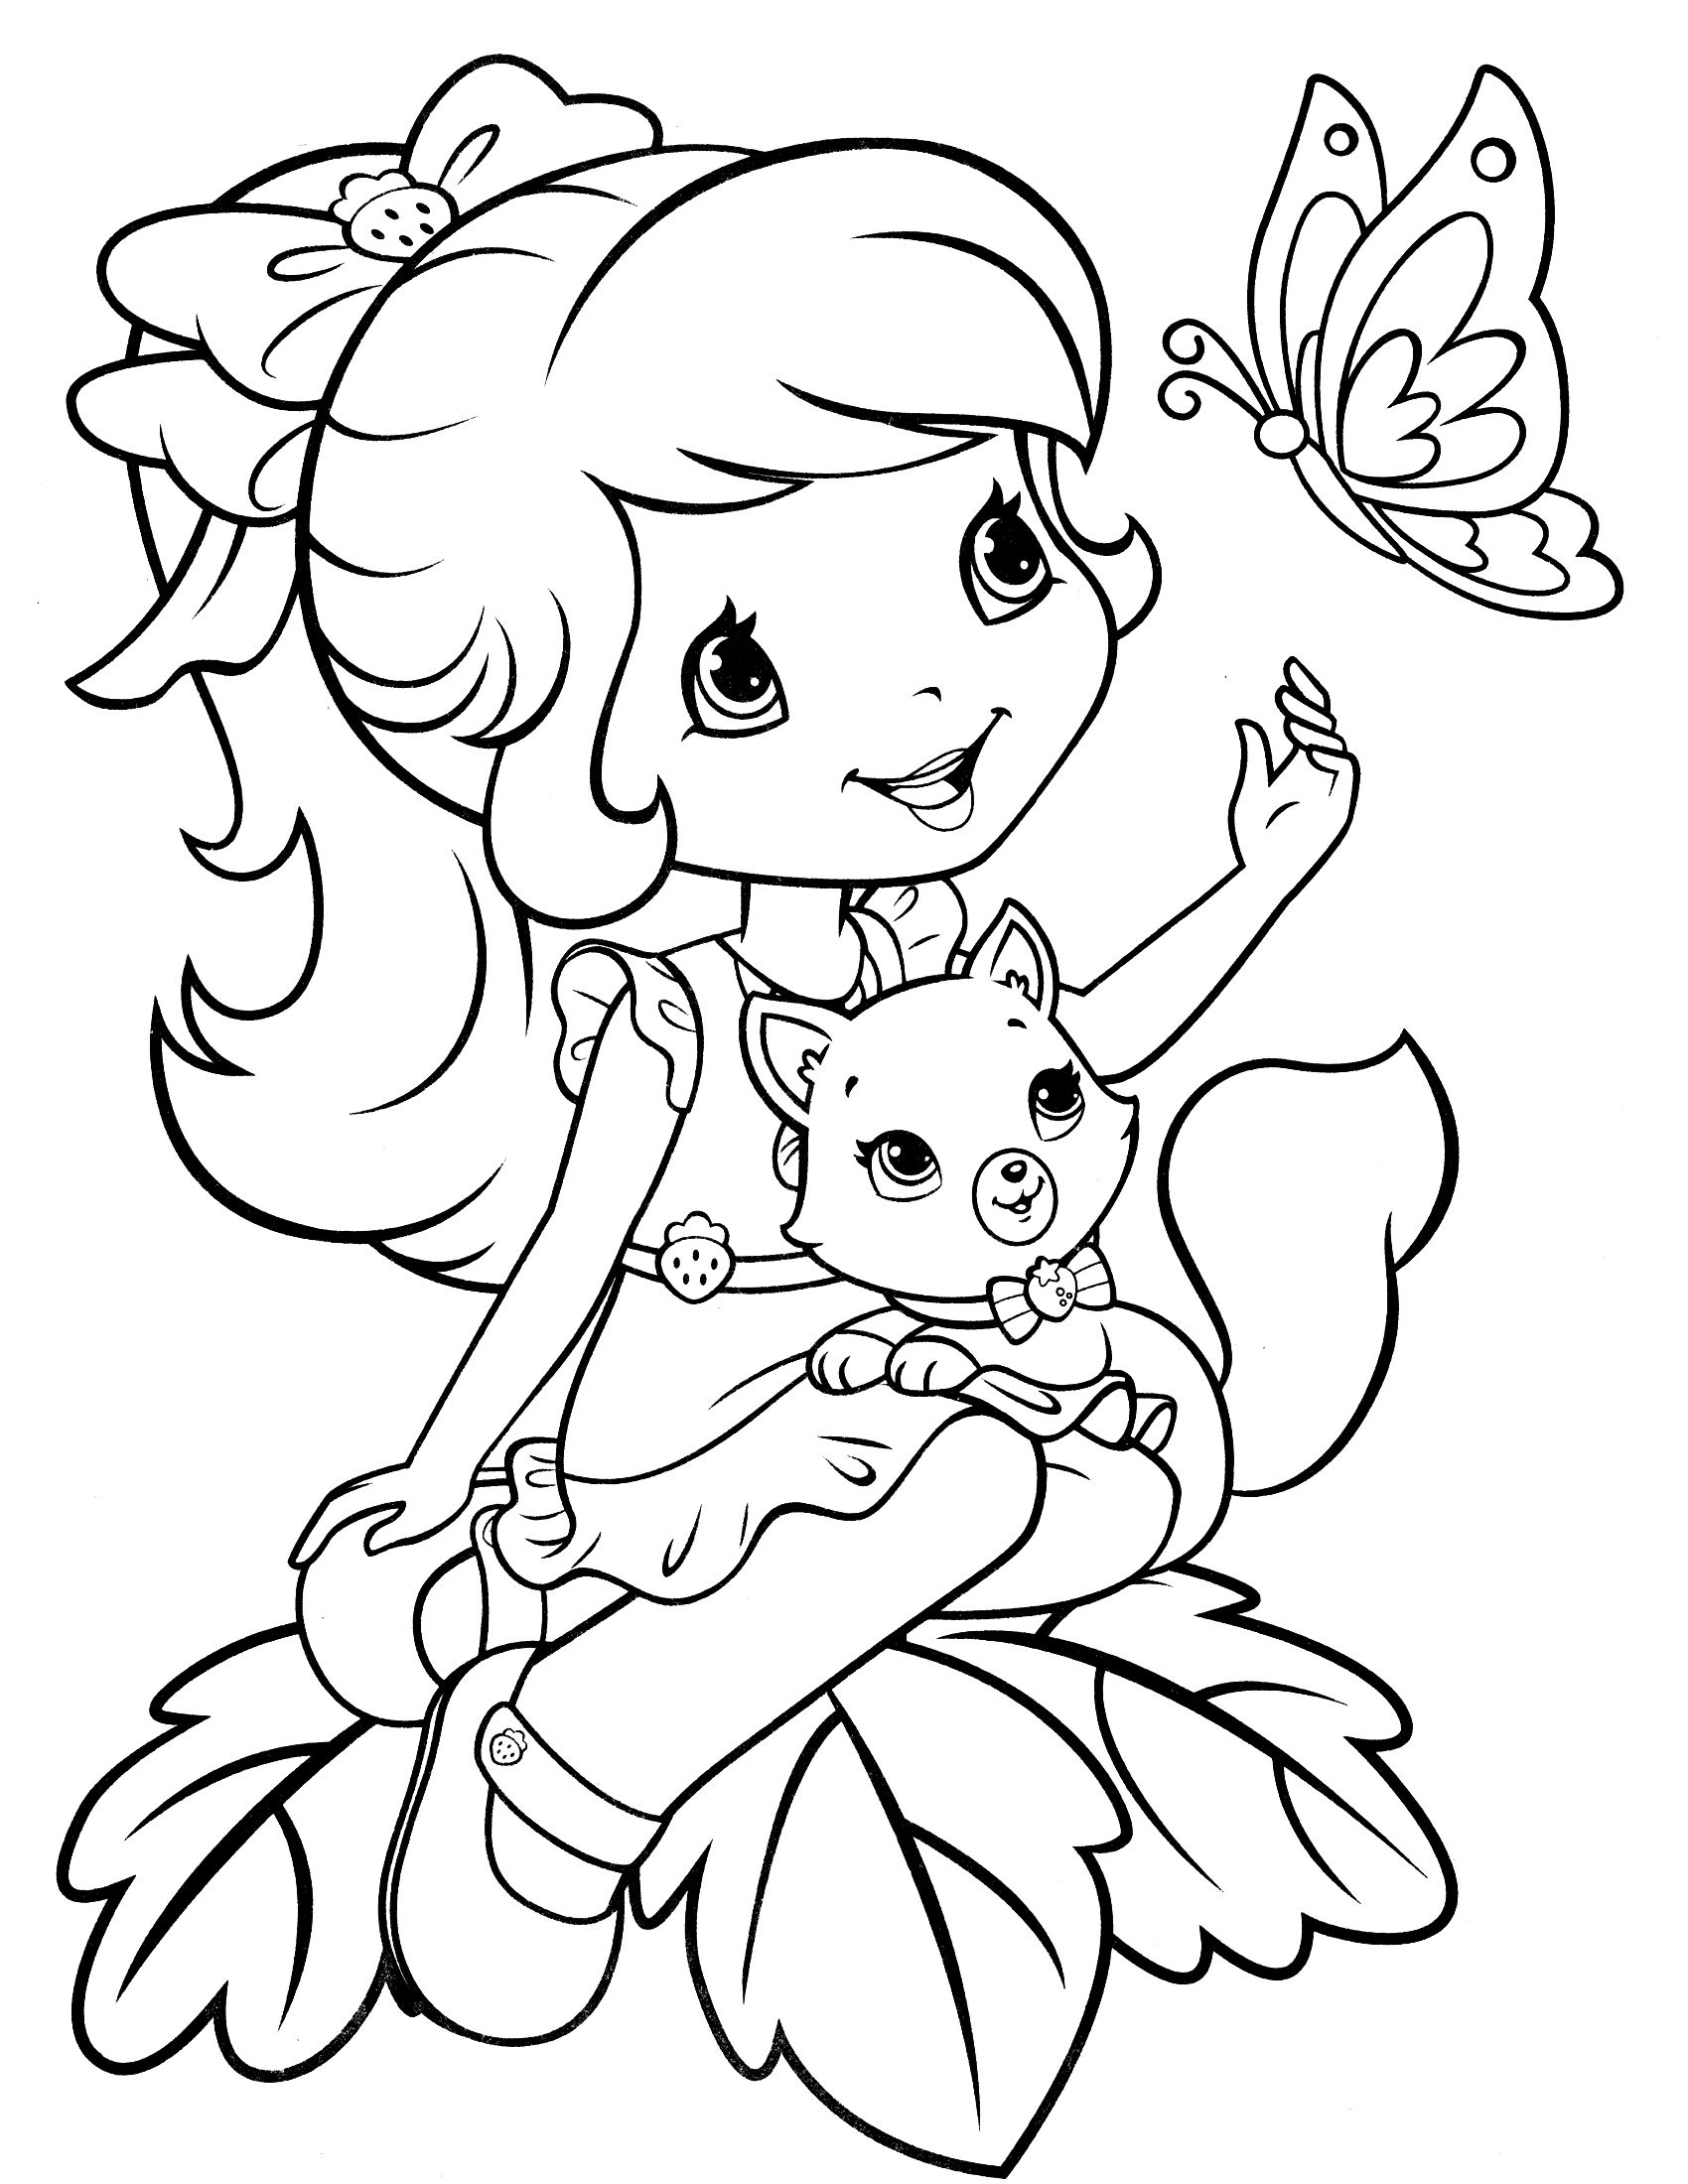 Strawberry Shortcake Coloring Page | Lisa Frank, Strawberry